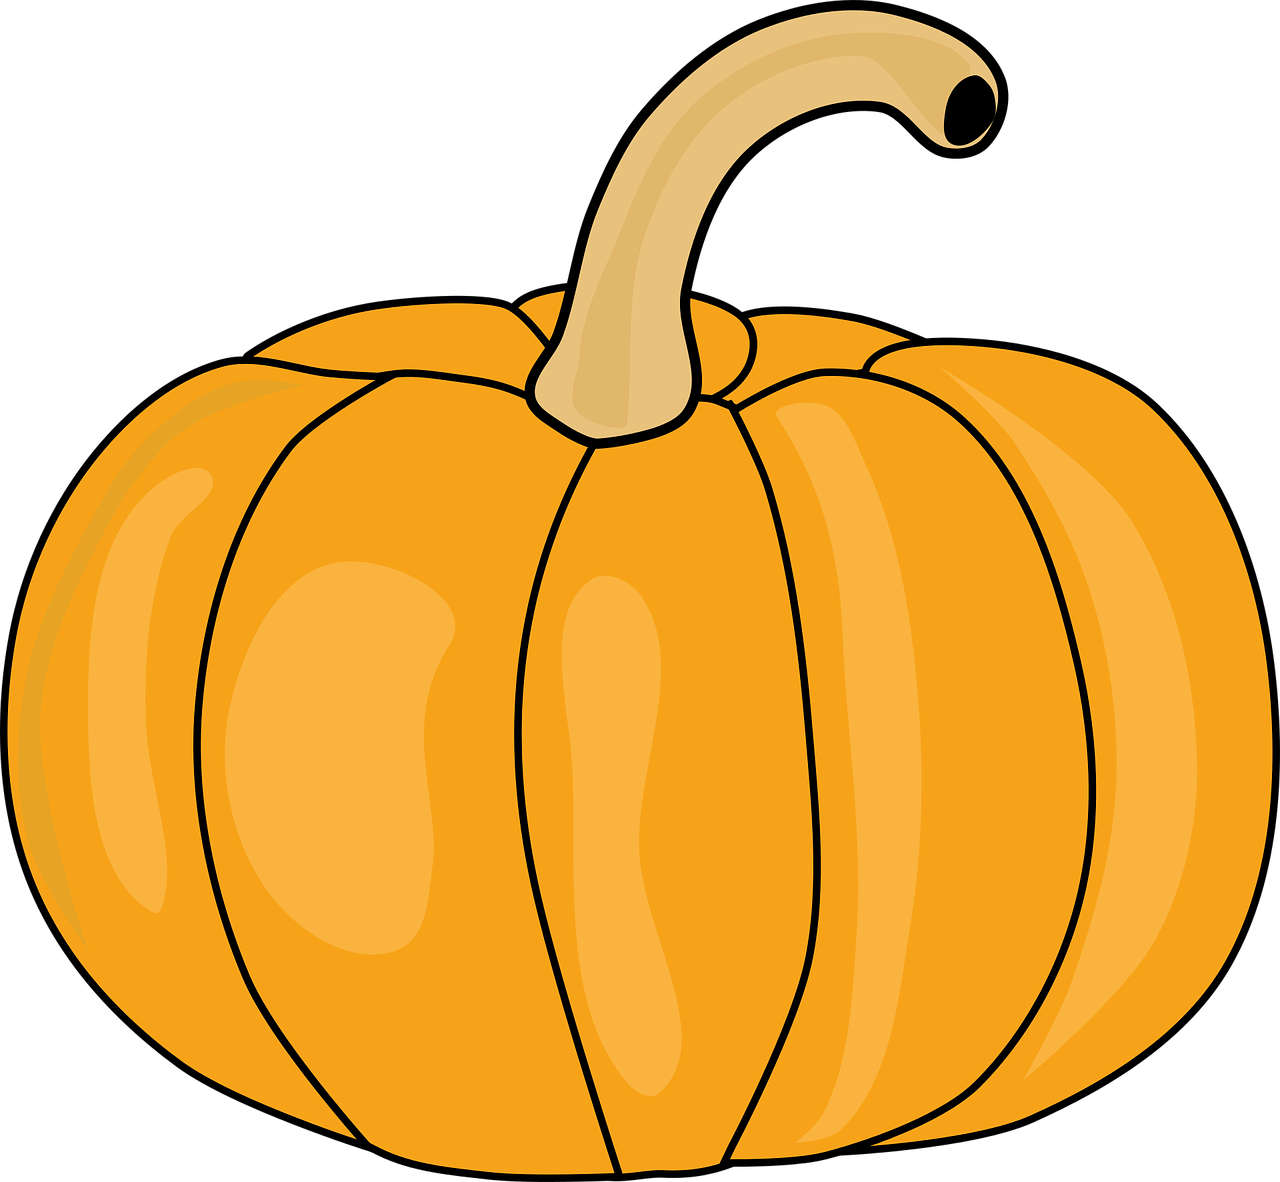 How To Draw A Pumpkin How To Draw In 1 Minute